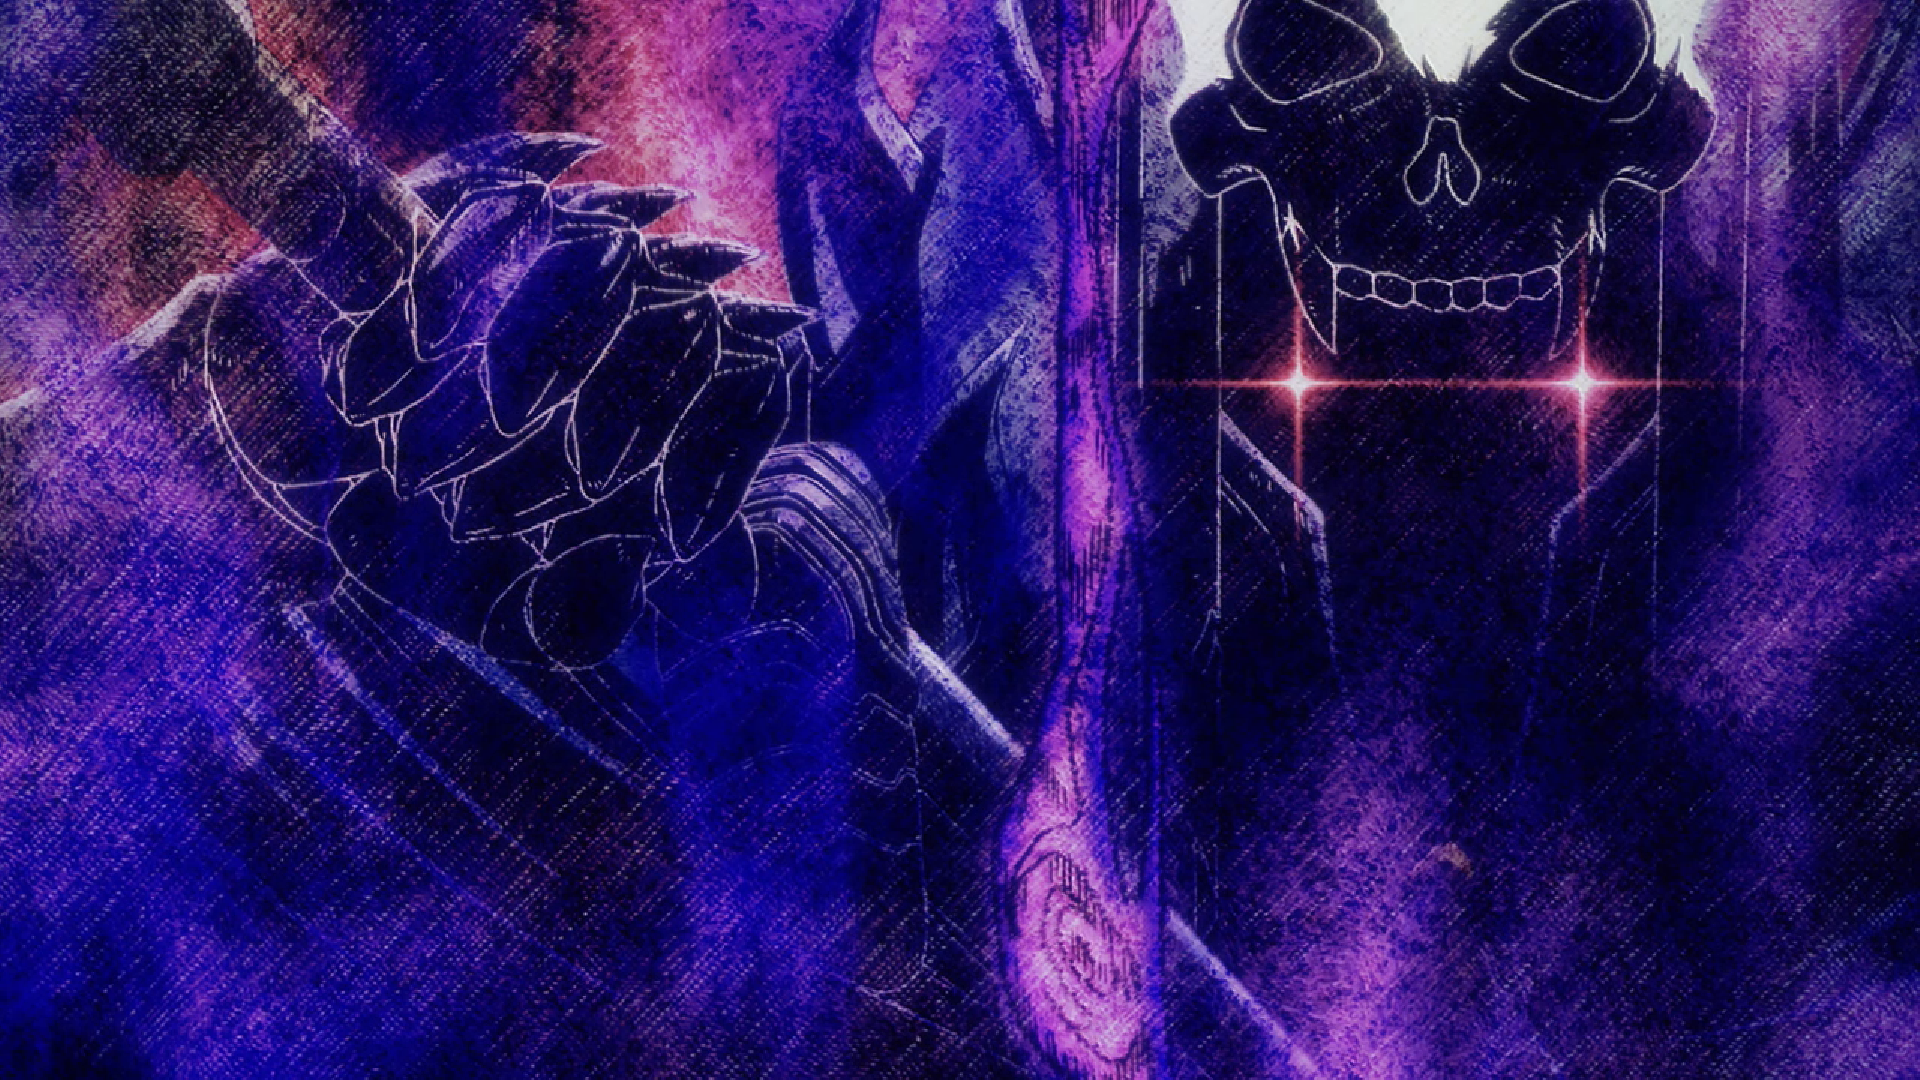 Virtual Haven - SwordGai The Animation Episode 1 Thumbnail Image.png